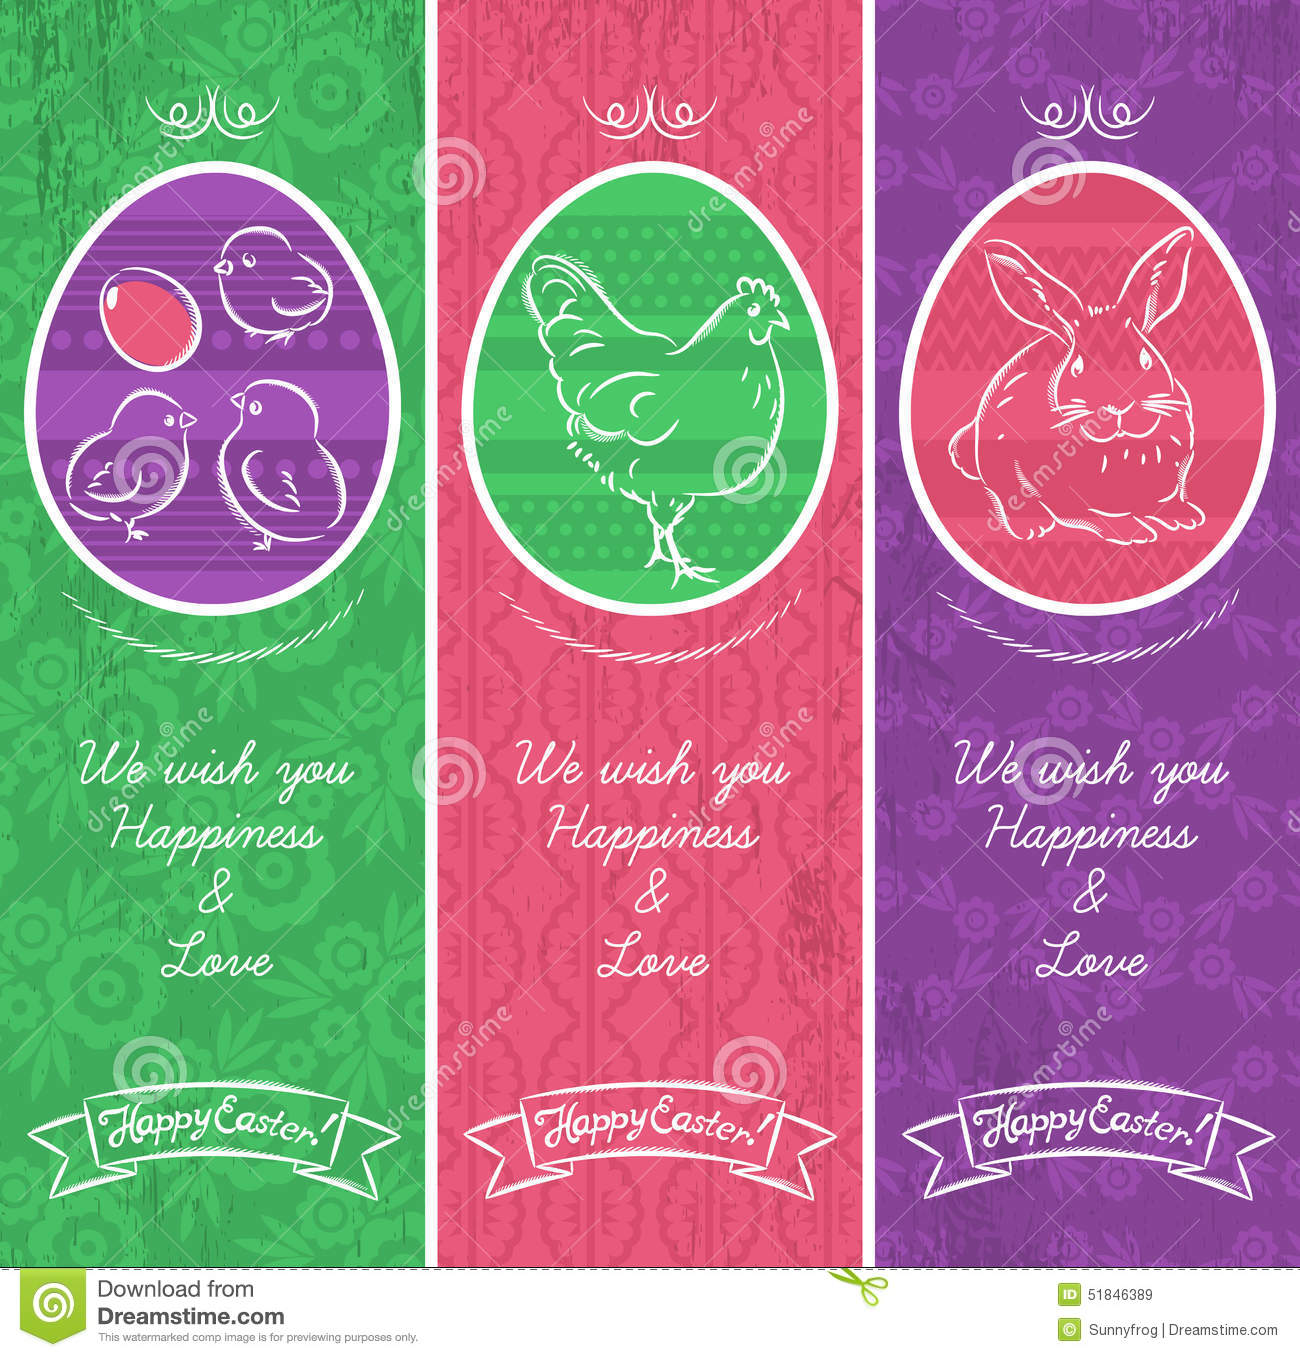 Greetings Web Banner For Easter Day With Frame Stock Vector